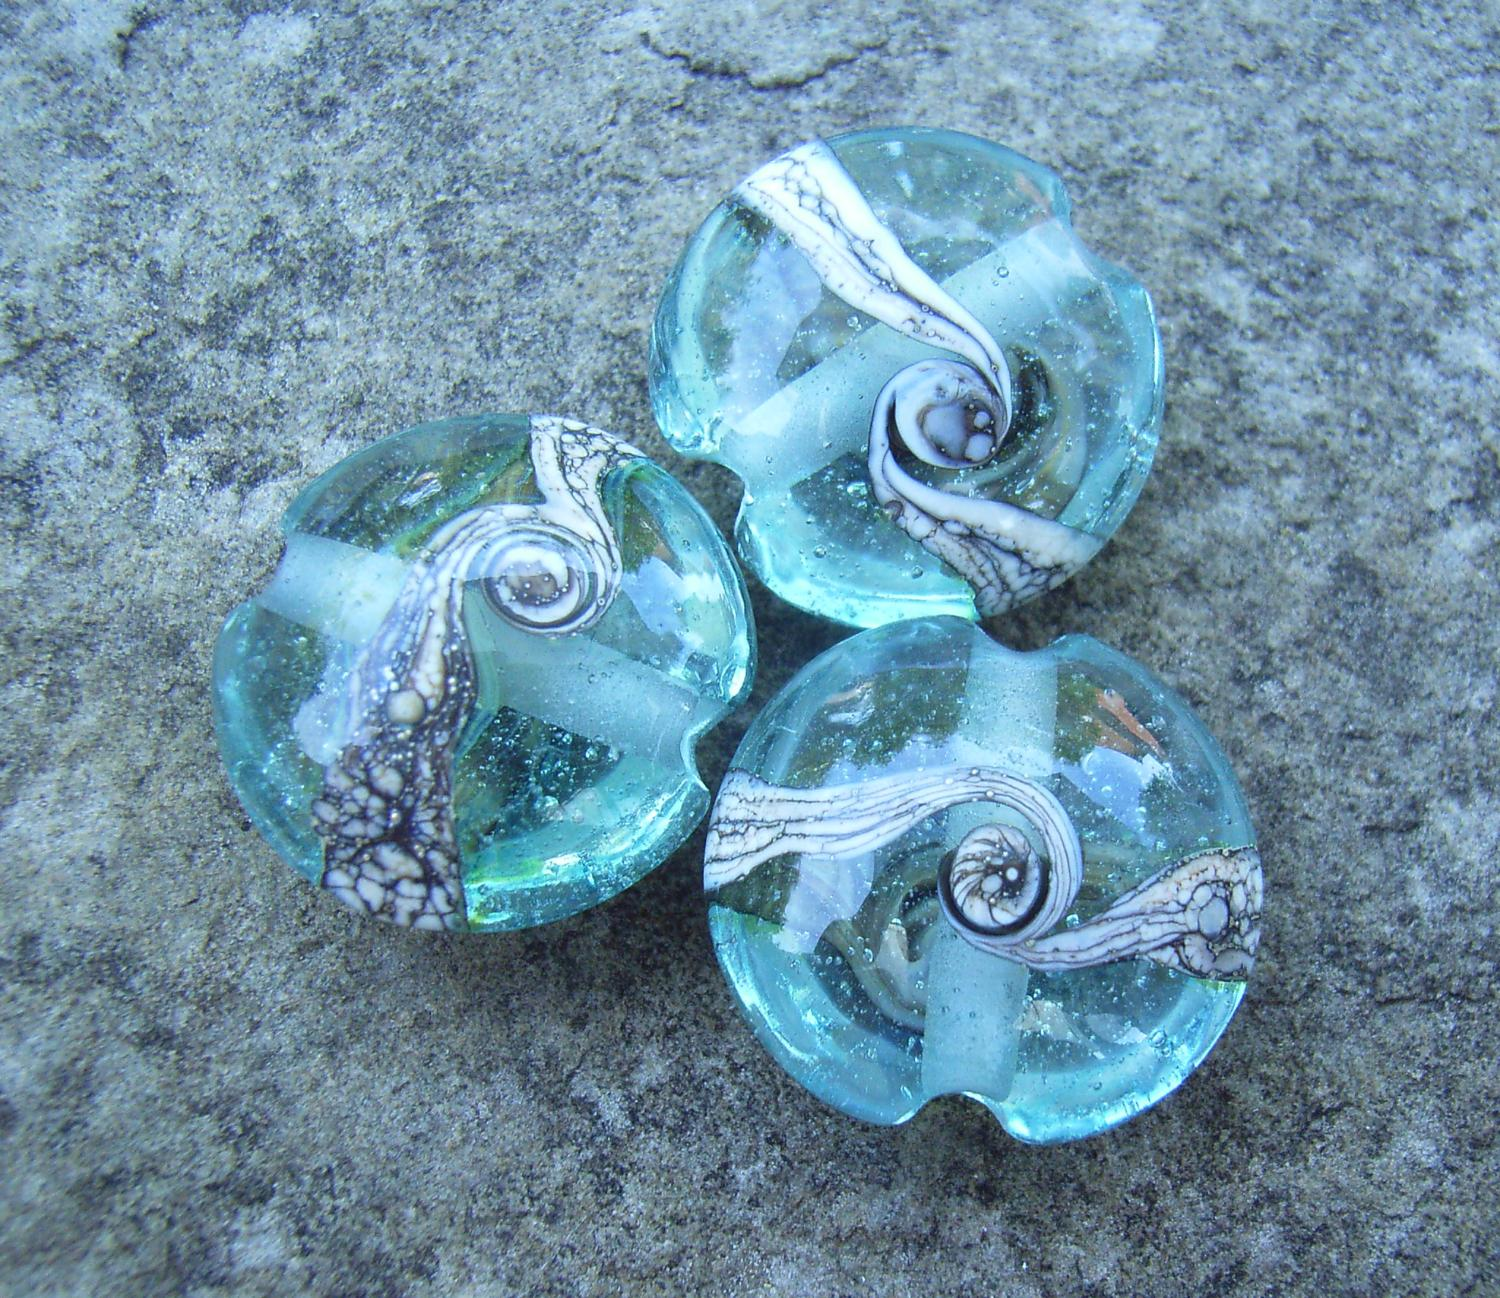 Silvered Ivory Swirl 18mm Aqua Lentil Handmade Artisan Glass Lampwork Beads - By the Bead, (Made to Order) c